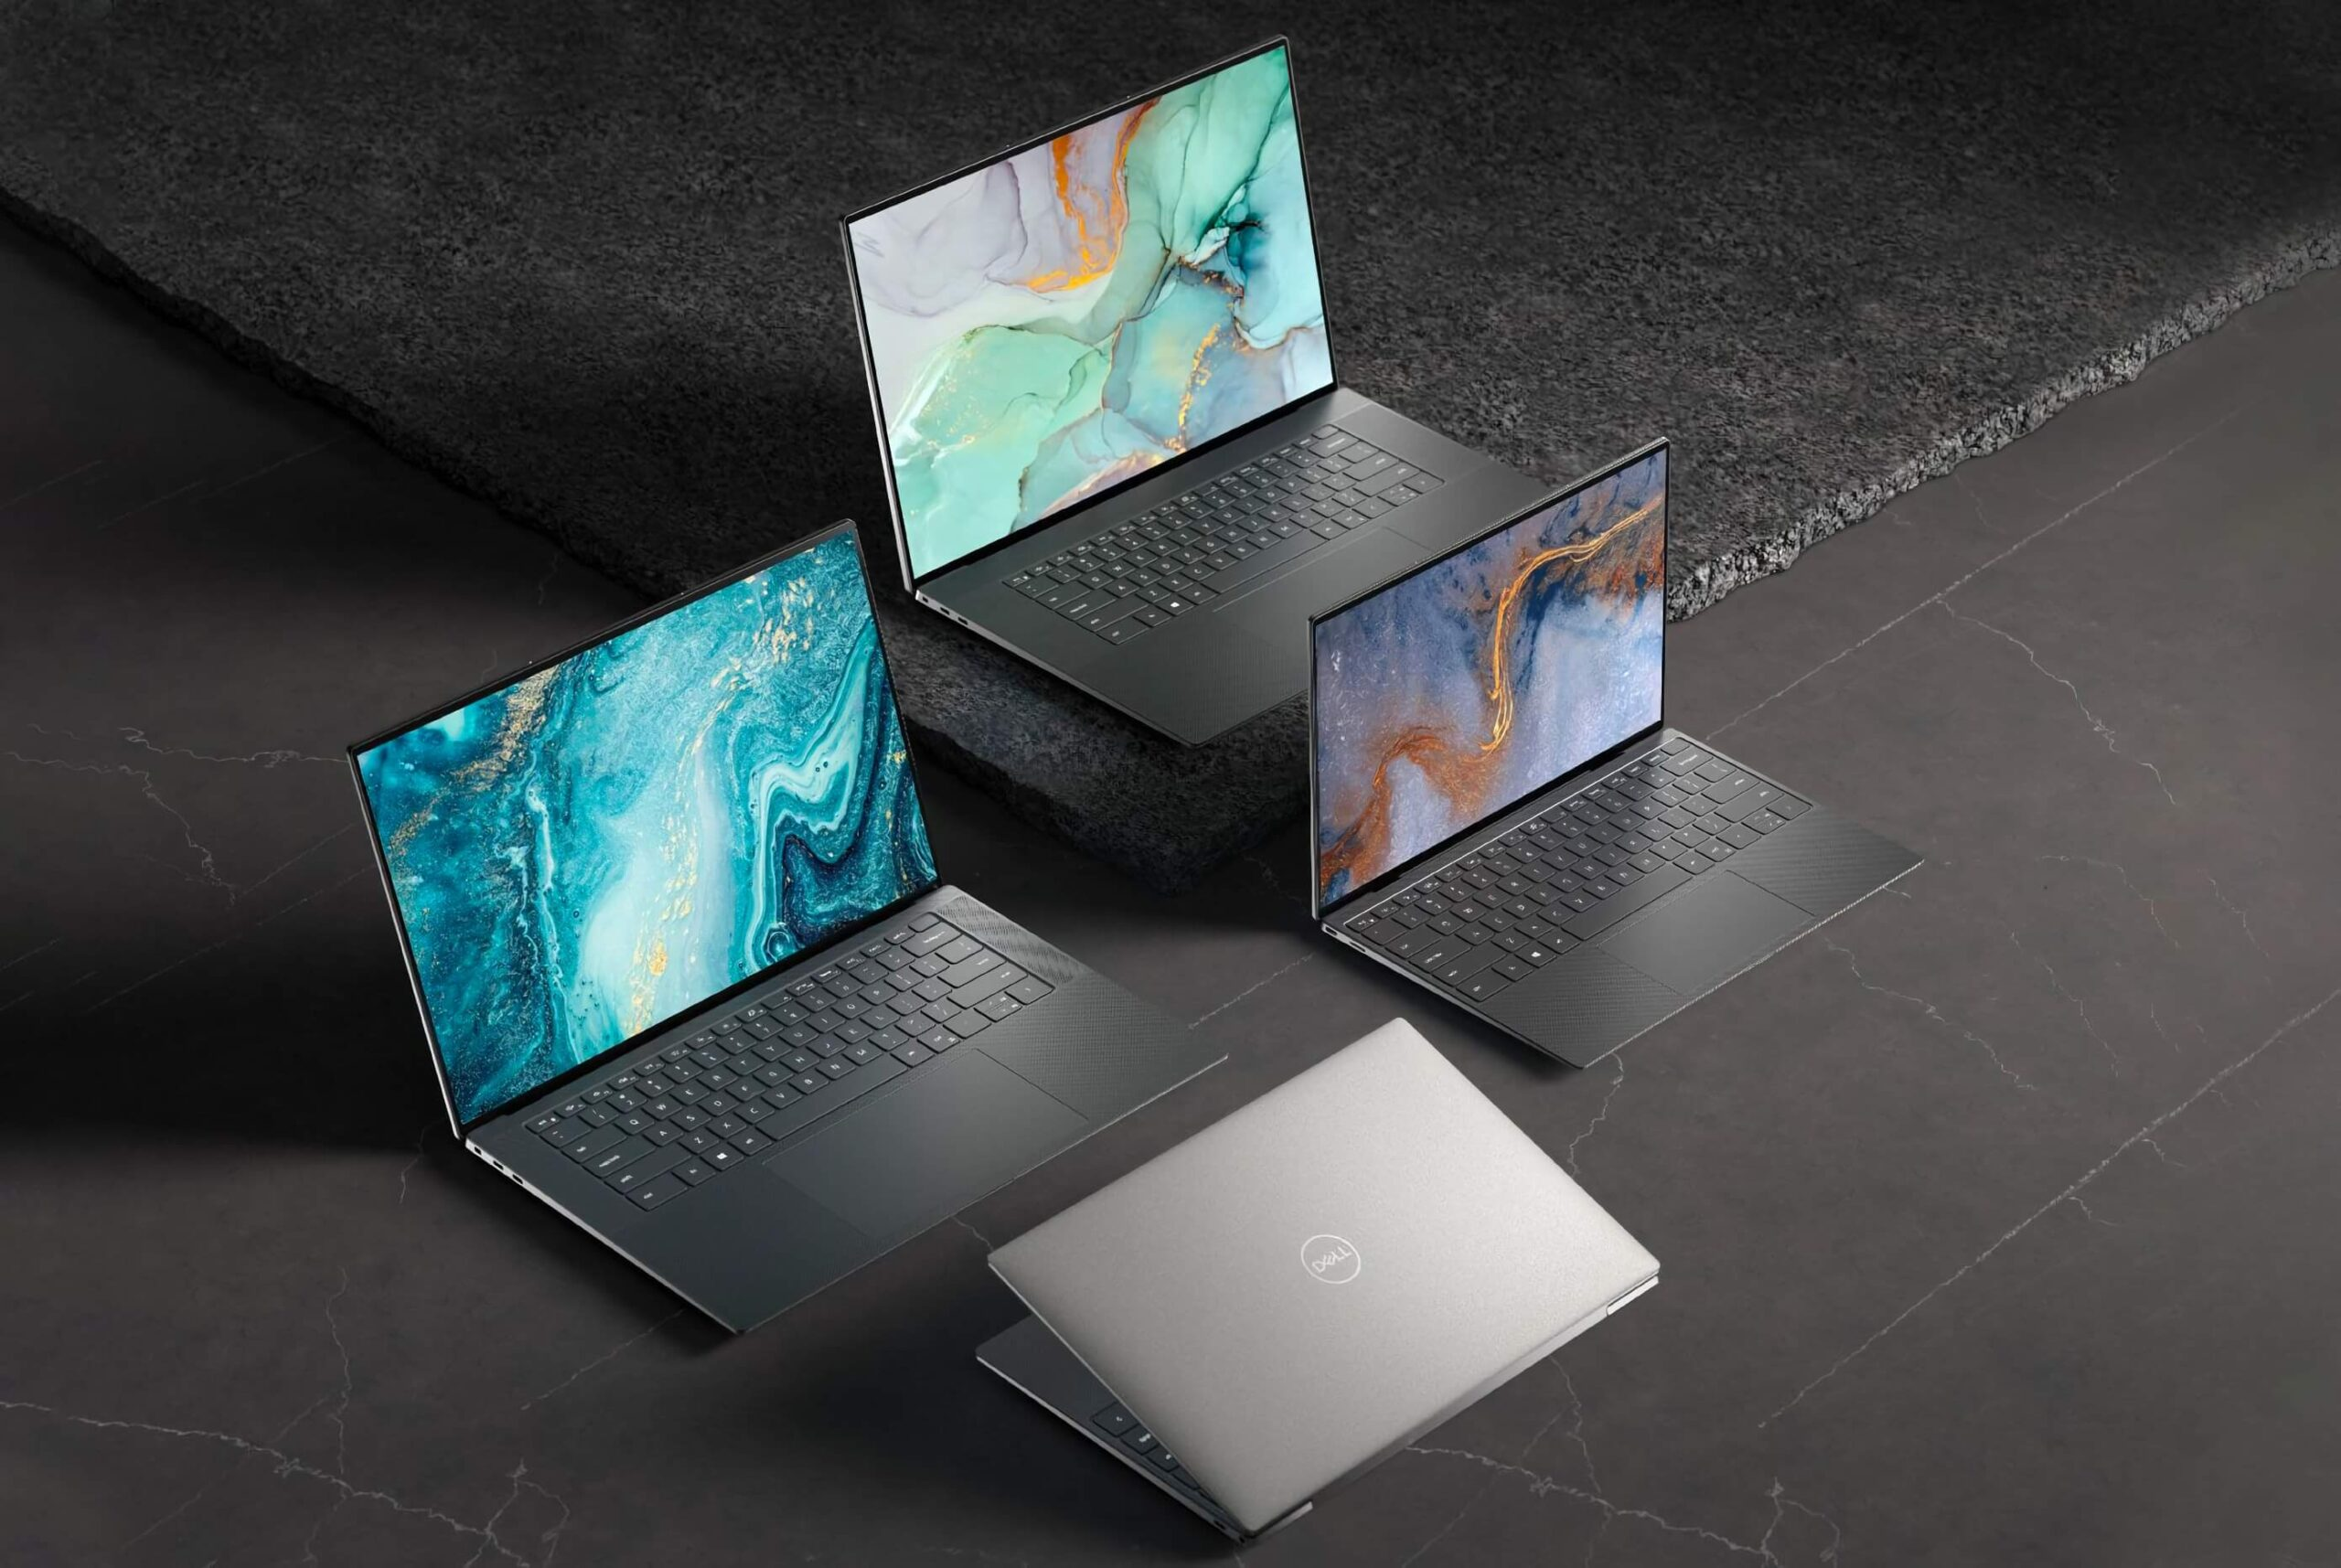 The Best Laptops 2020 - TechSpot